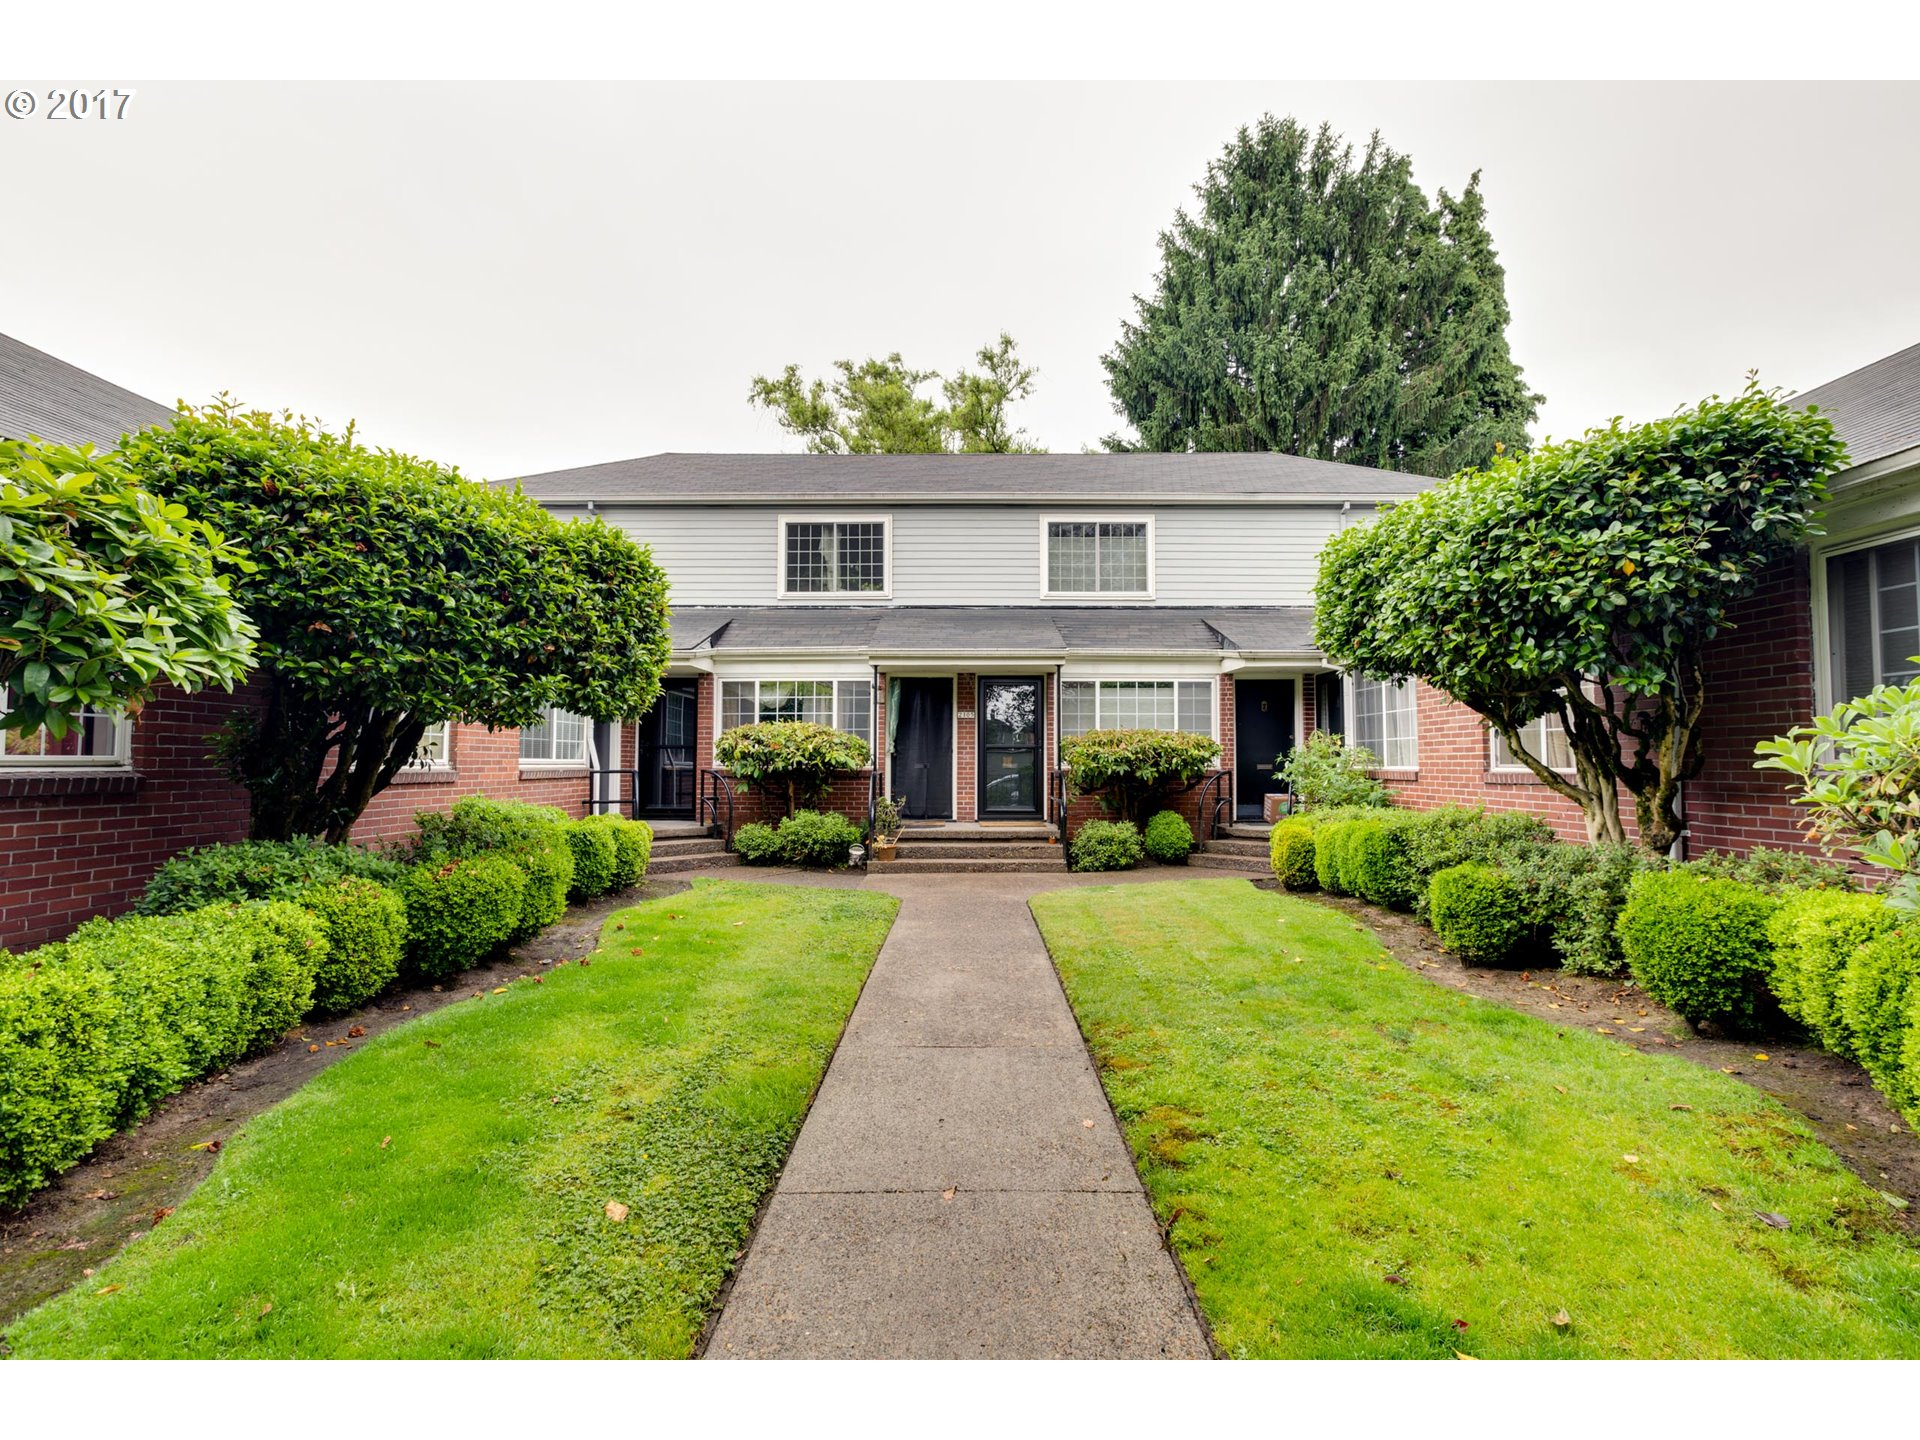 2105 NE EVERETT ST 3, Portland, OR 97232